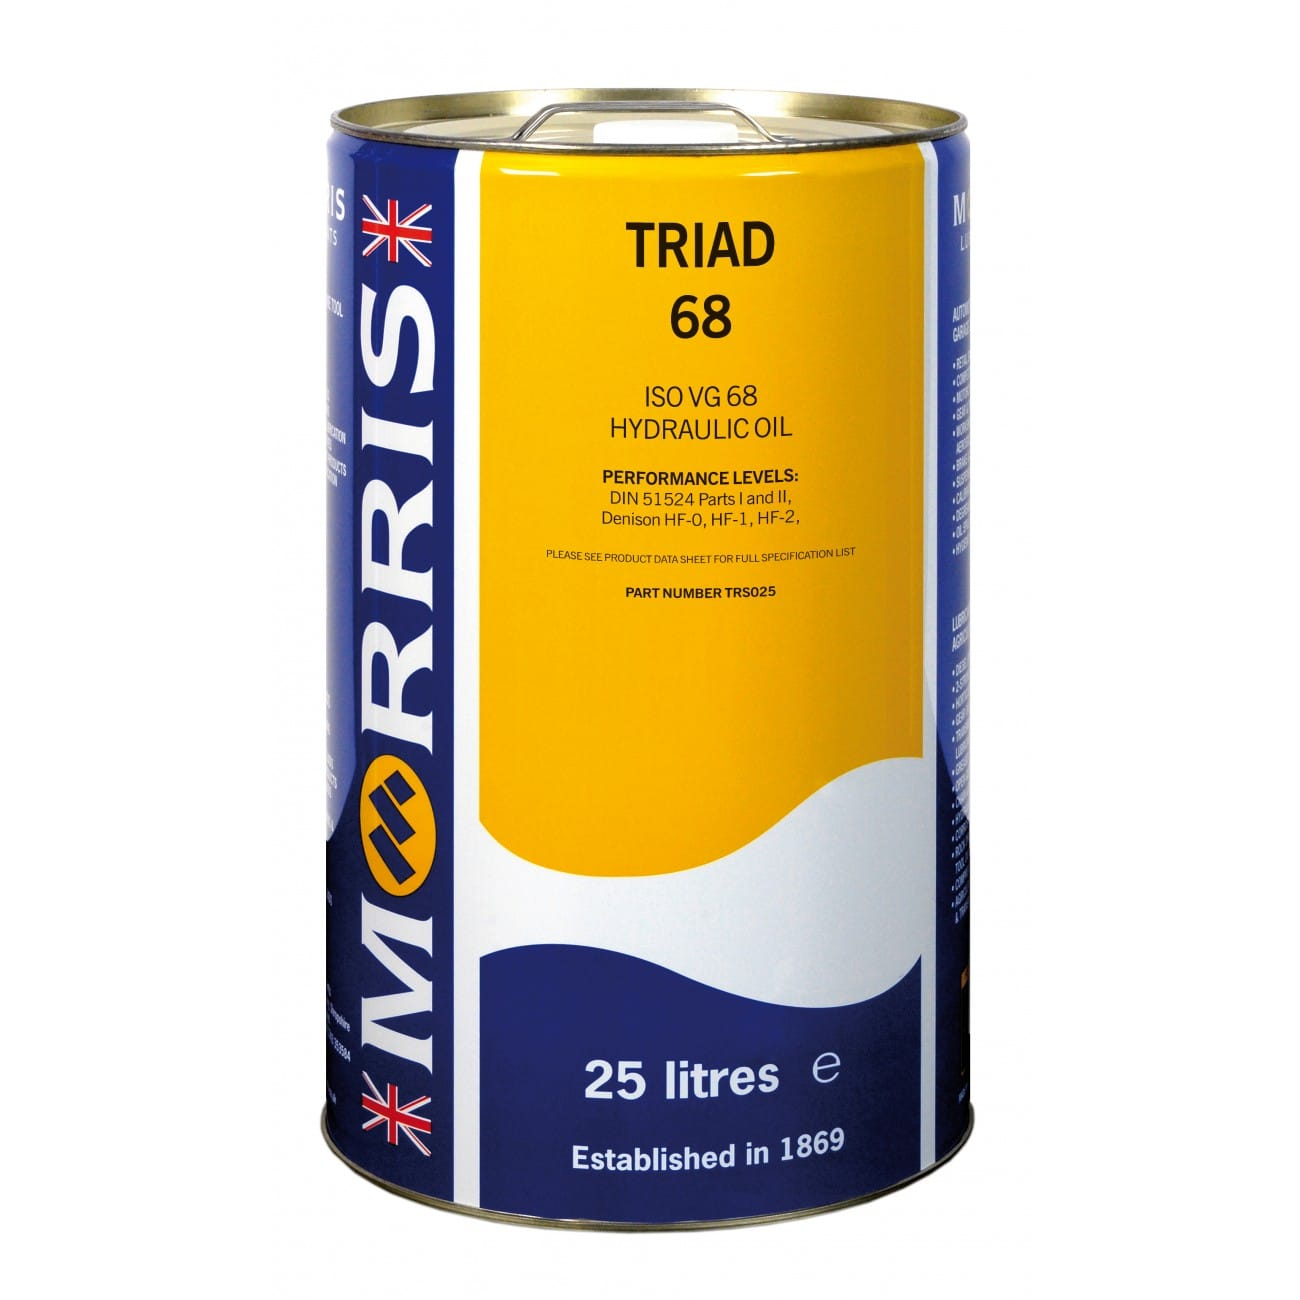 Triad 68 Hydraulic Oil